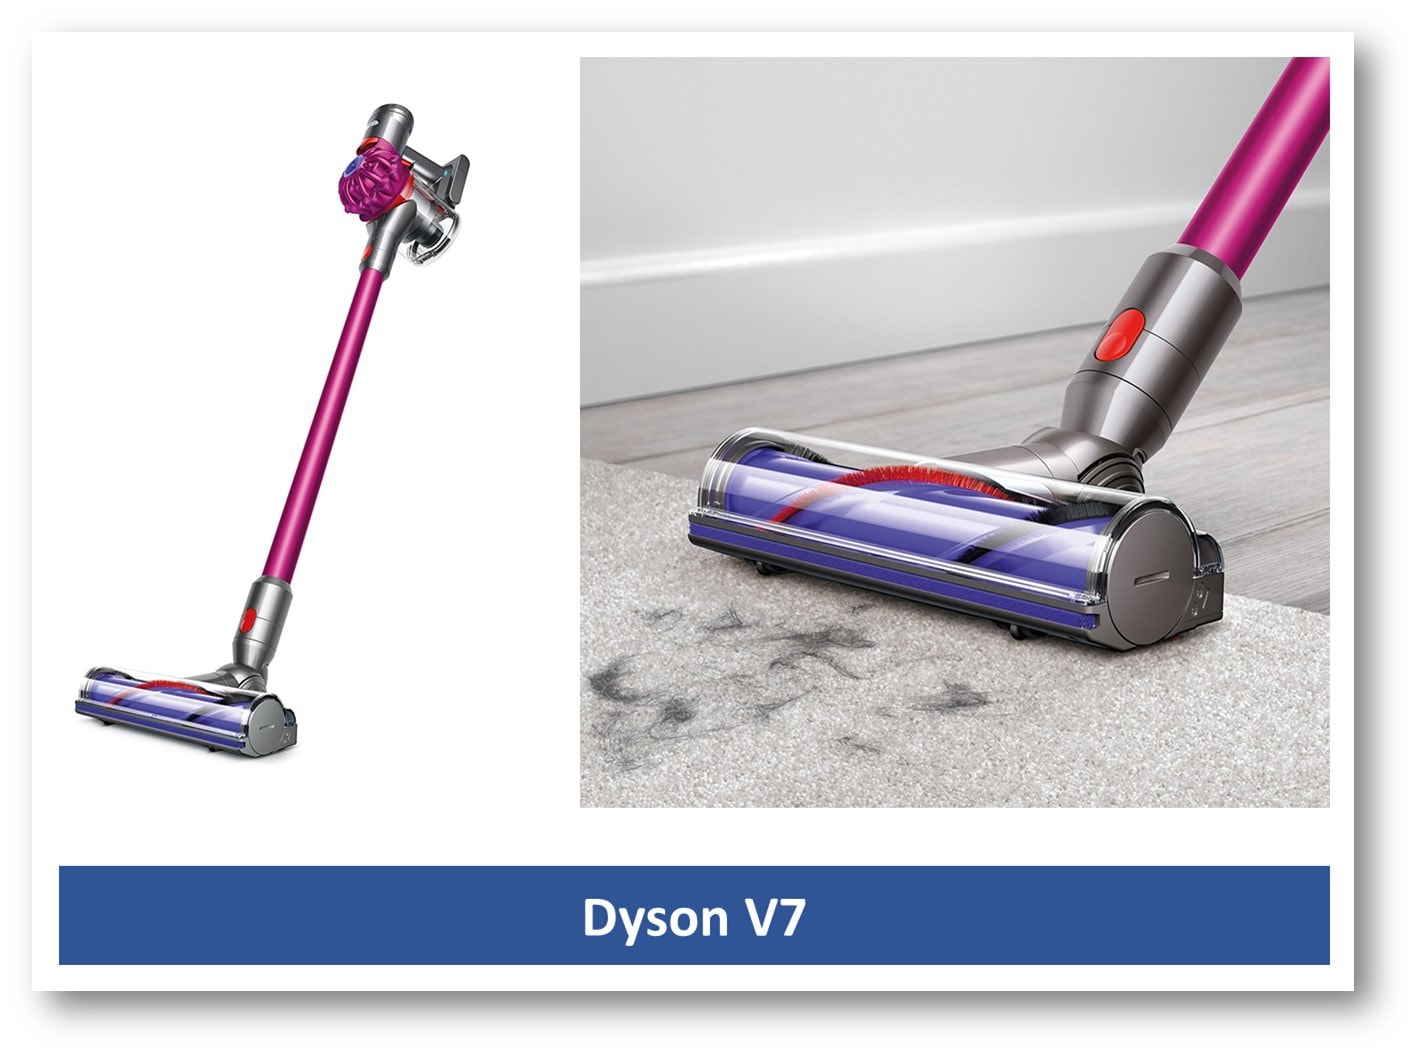 Dyson V7 Great Vacuum For Laminate Floor